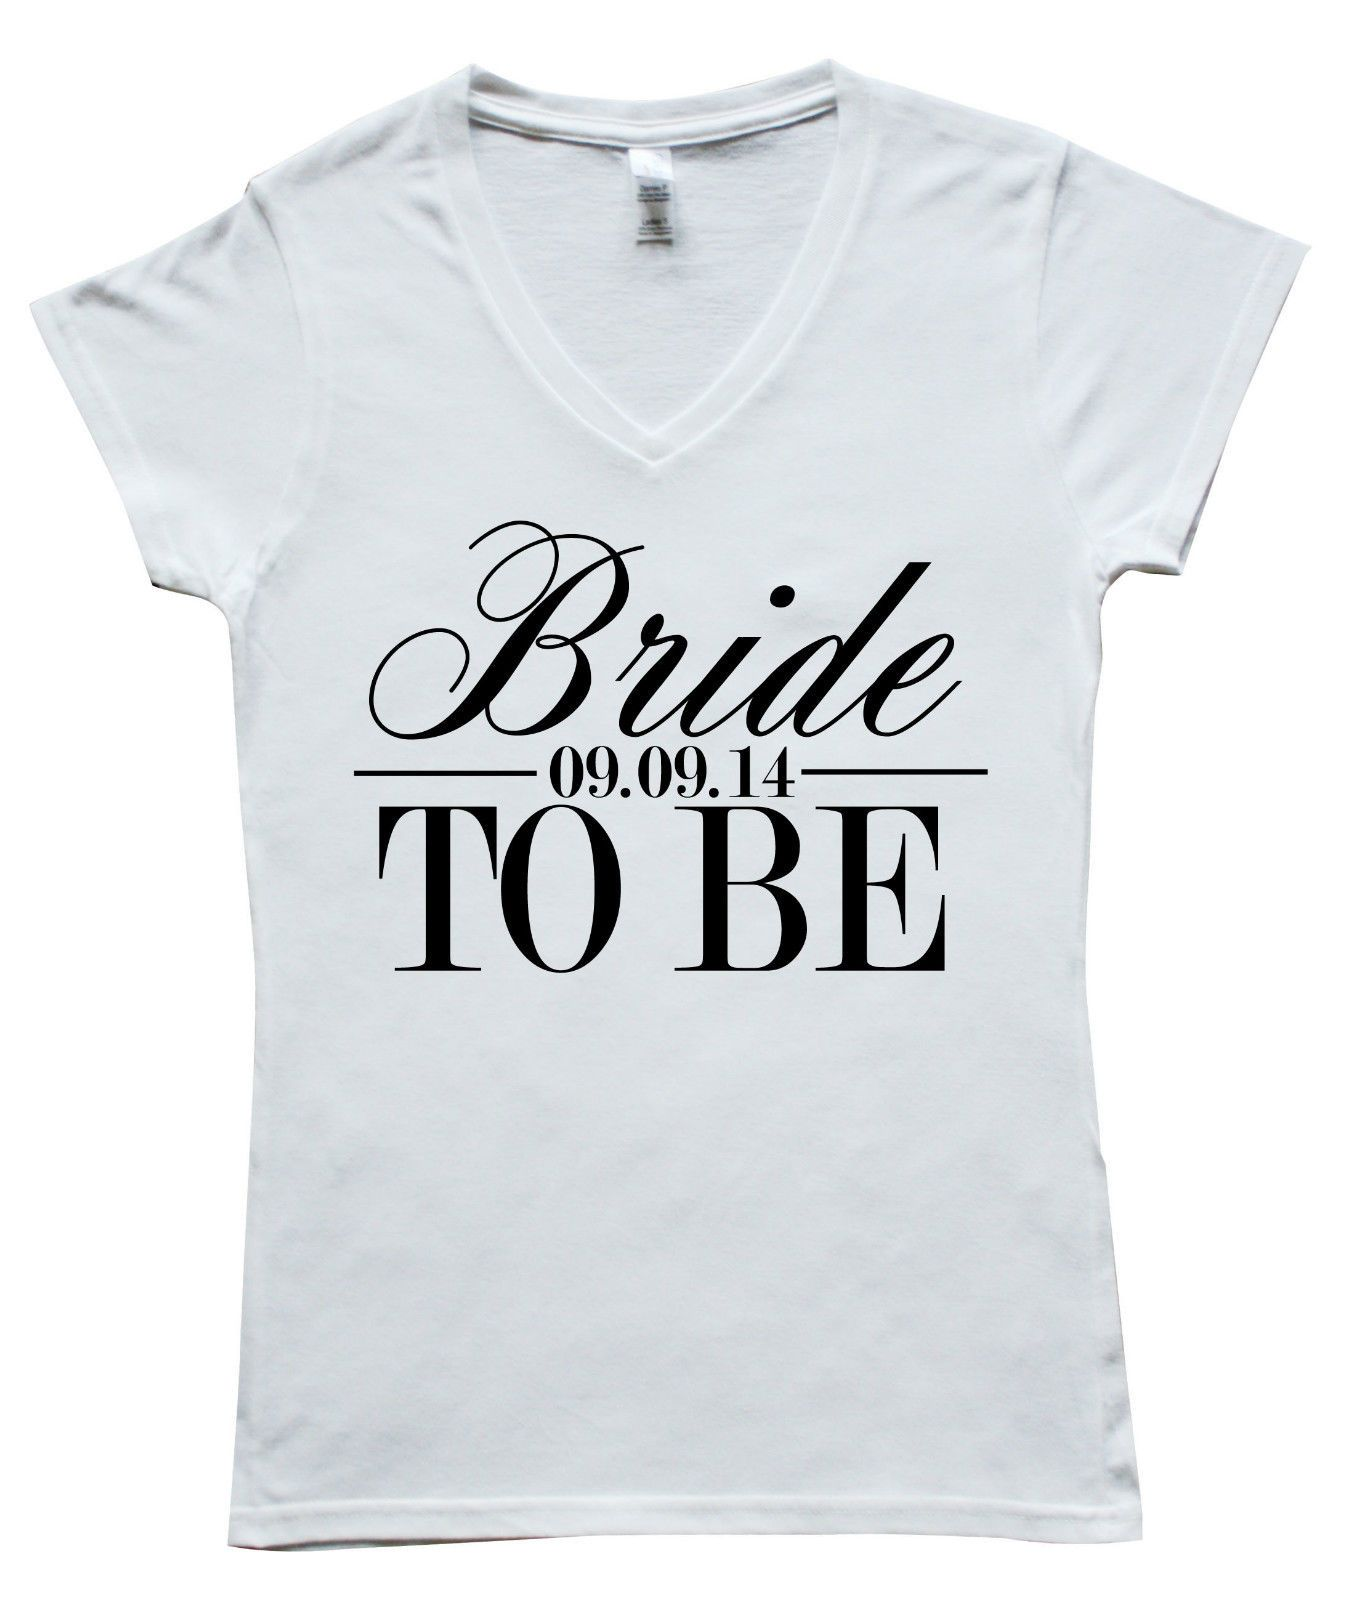 0dbdc111 Bride to be Personalised Date V Neck Womens T-Shirt Wedding Hen Do Gift  S/M/L/XL | eBay